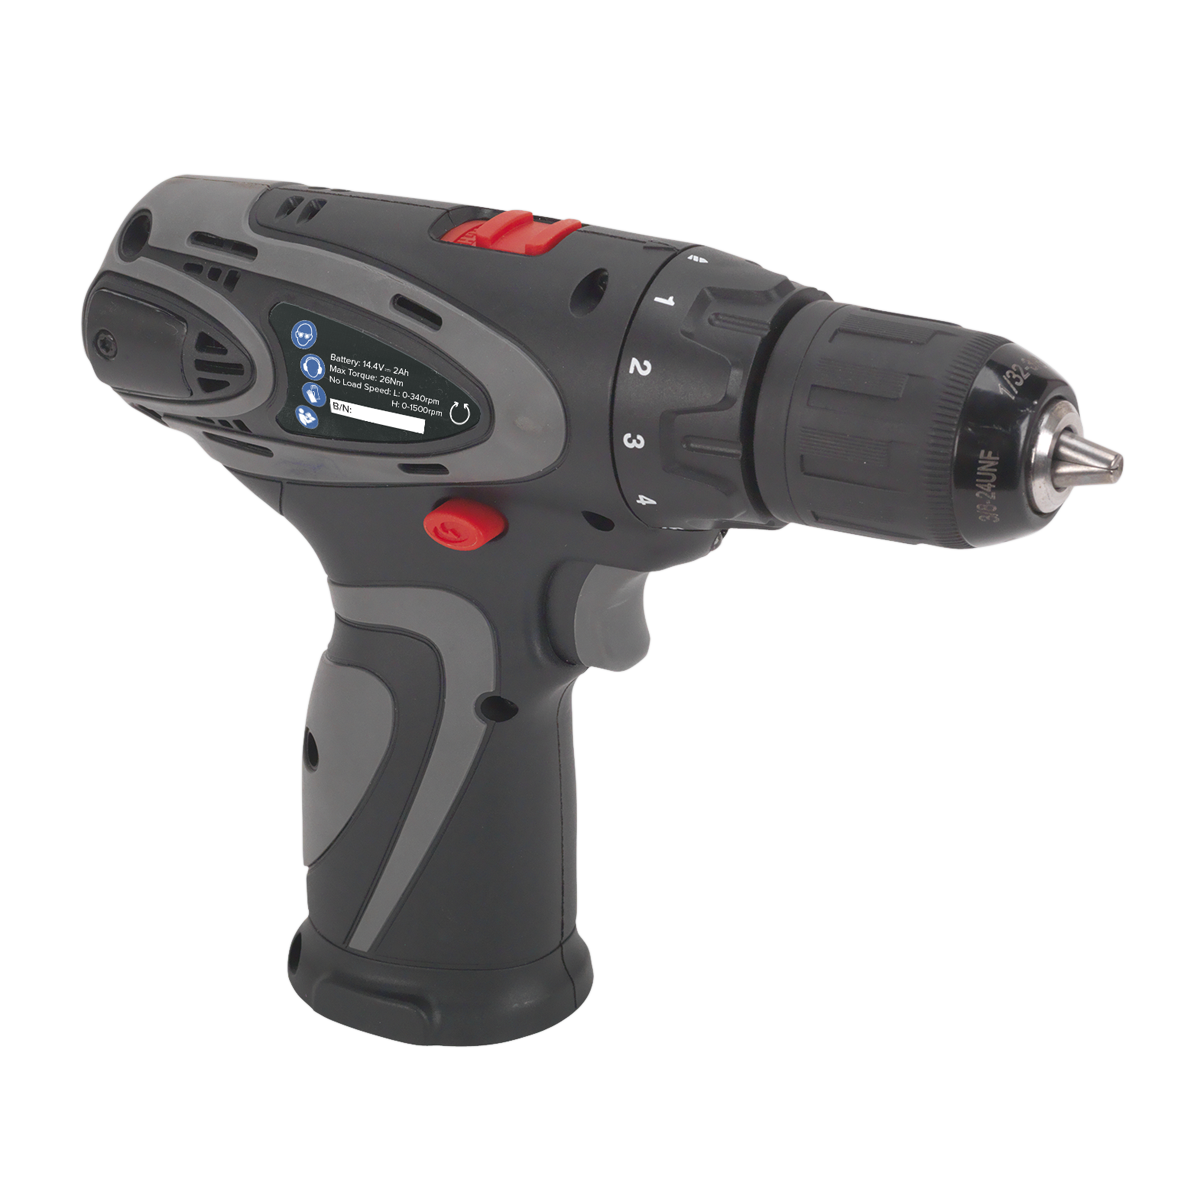 Drill/Driver Ø10mm 2-Speed 14.4V Lithium-ion - Body Only